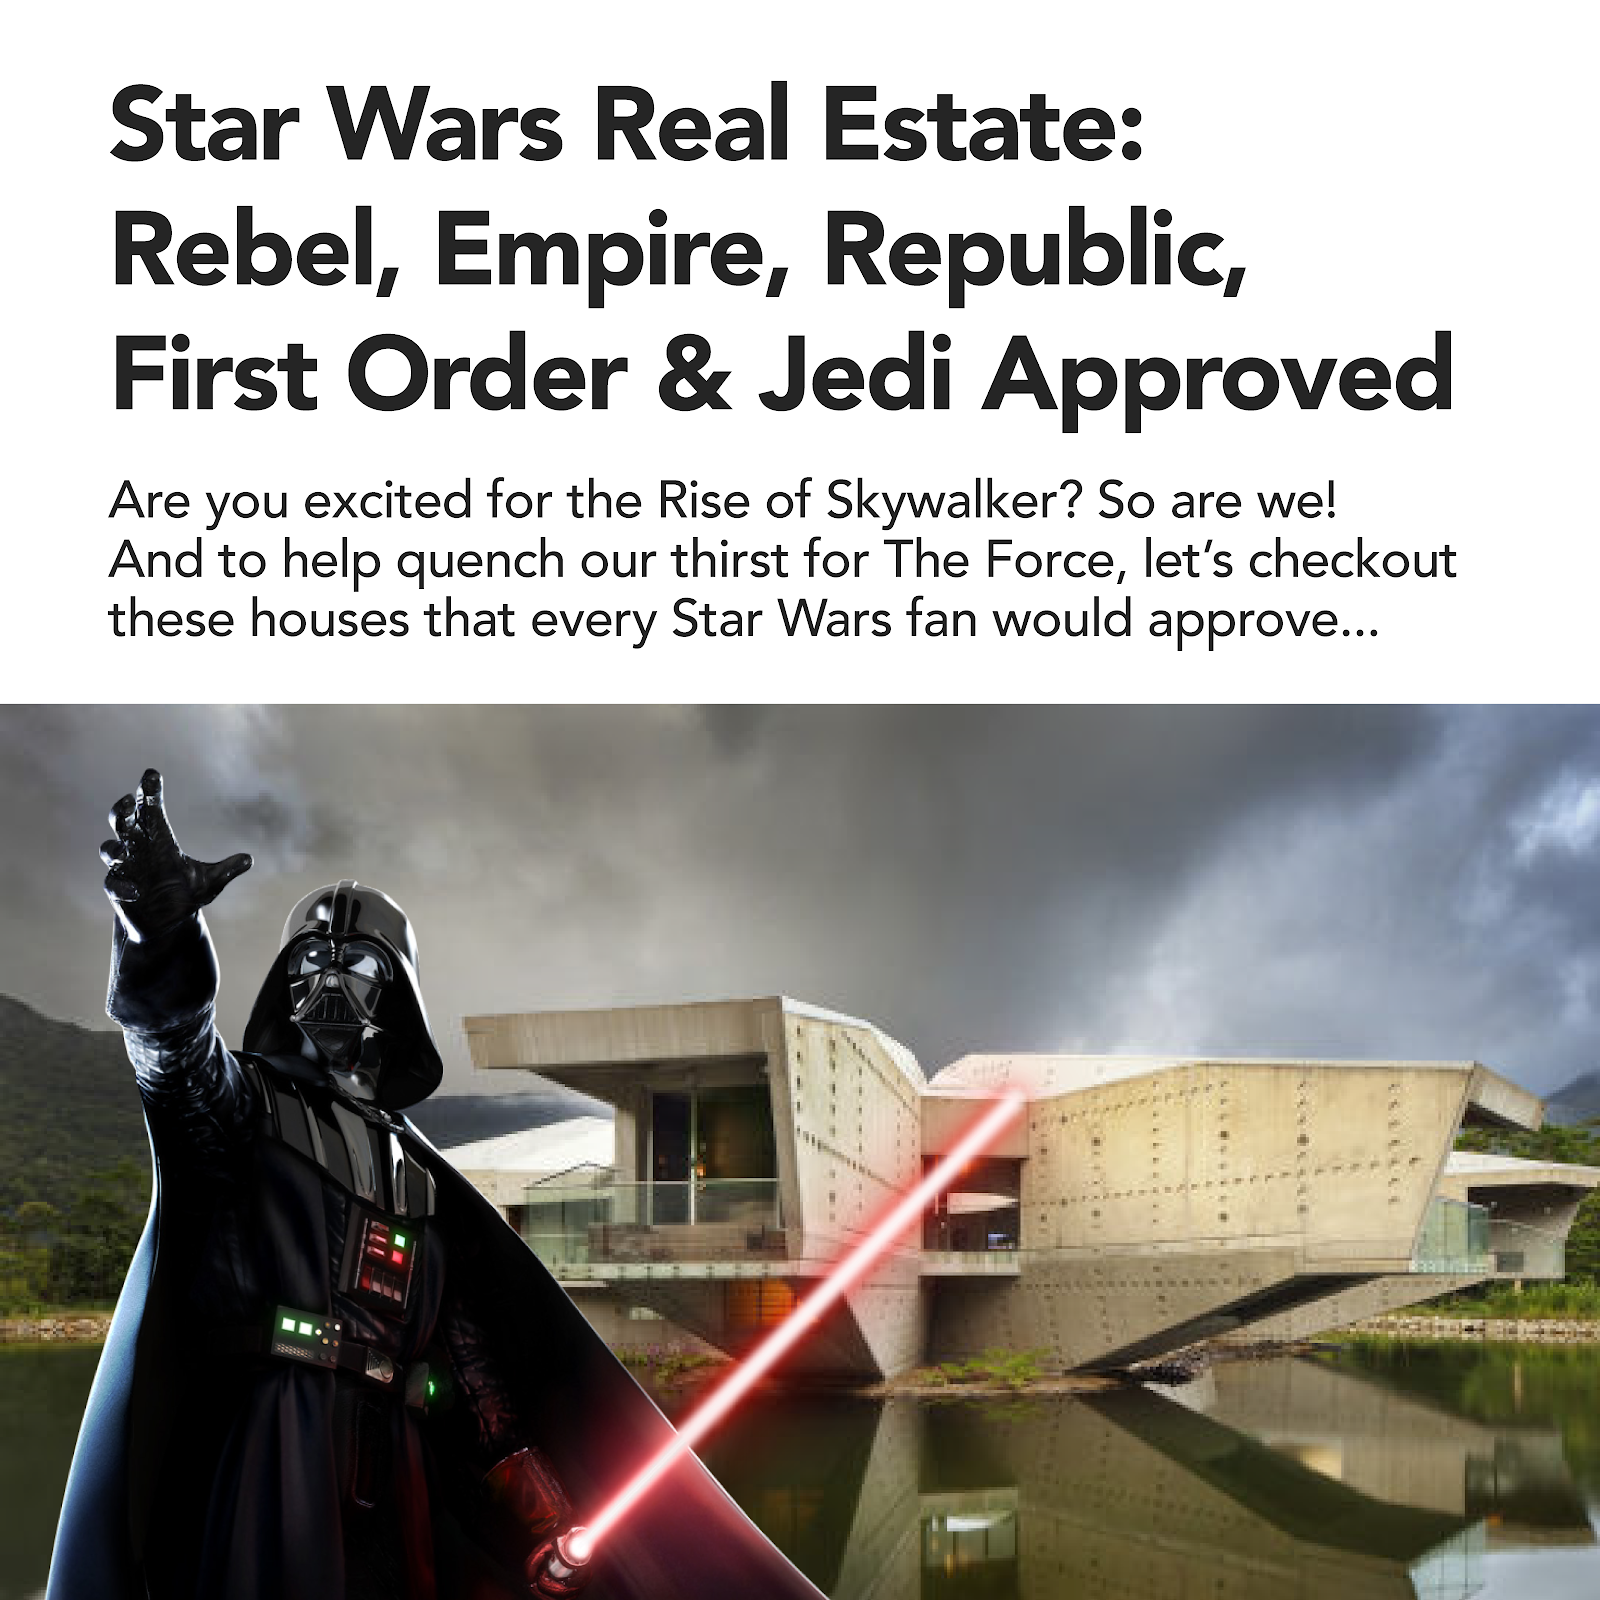 star wars real estate greater property group